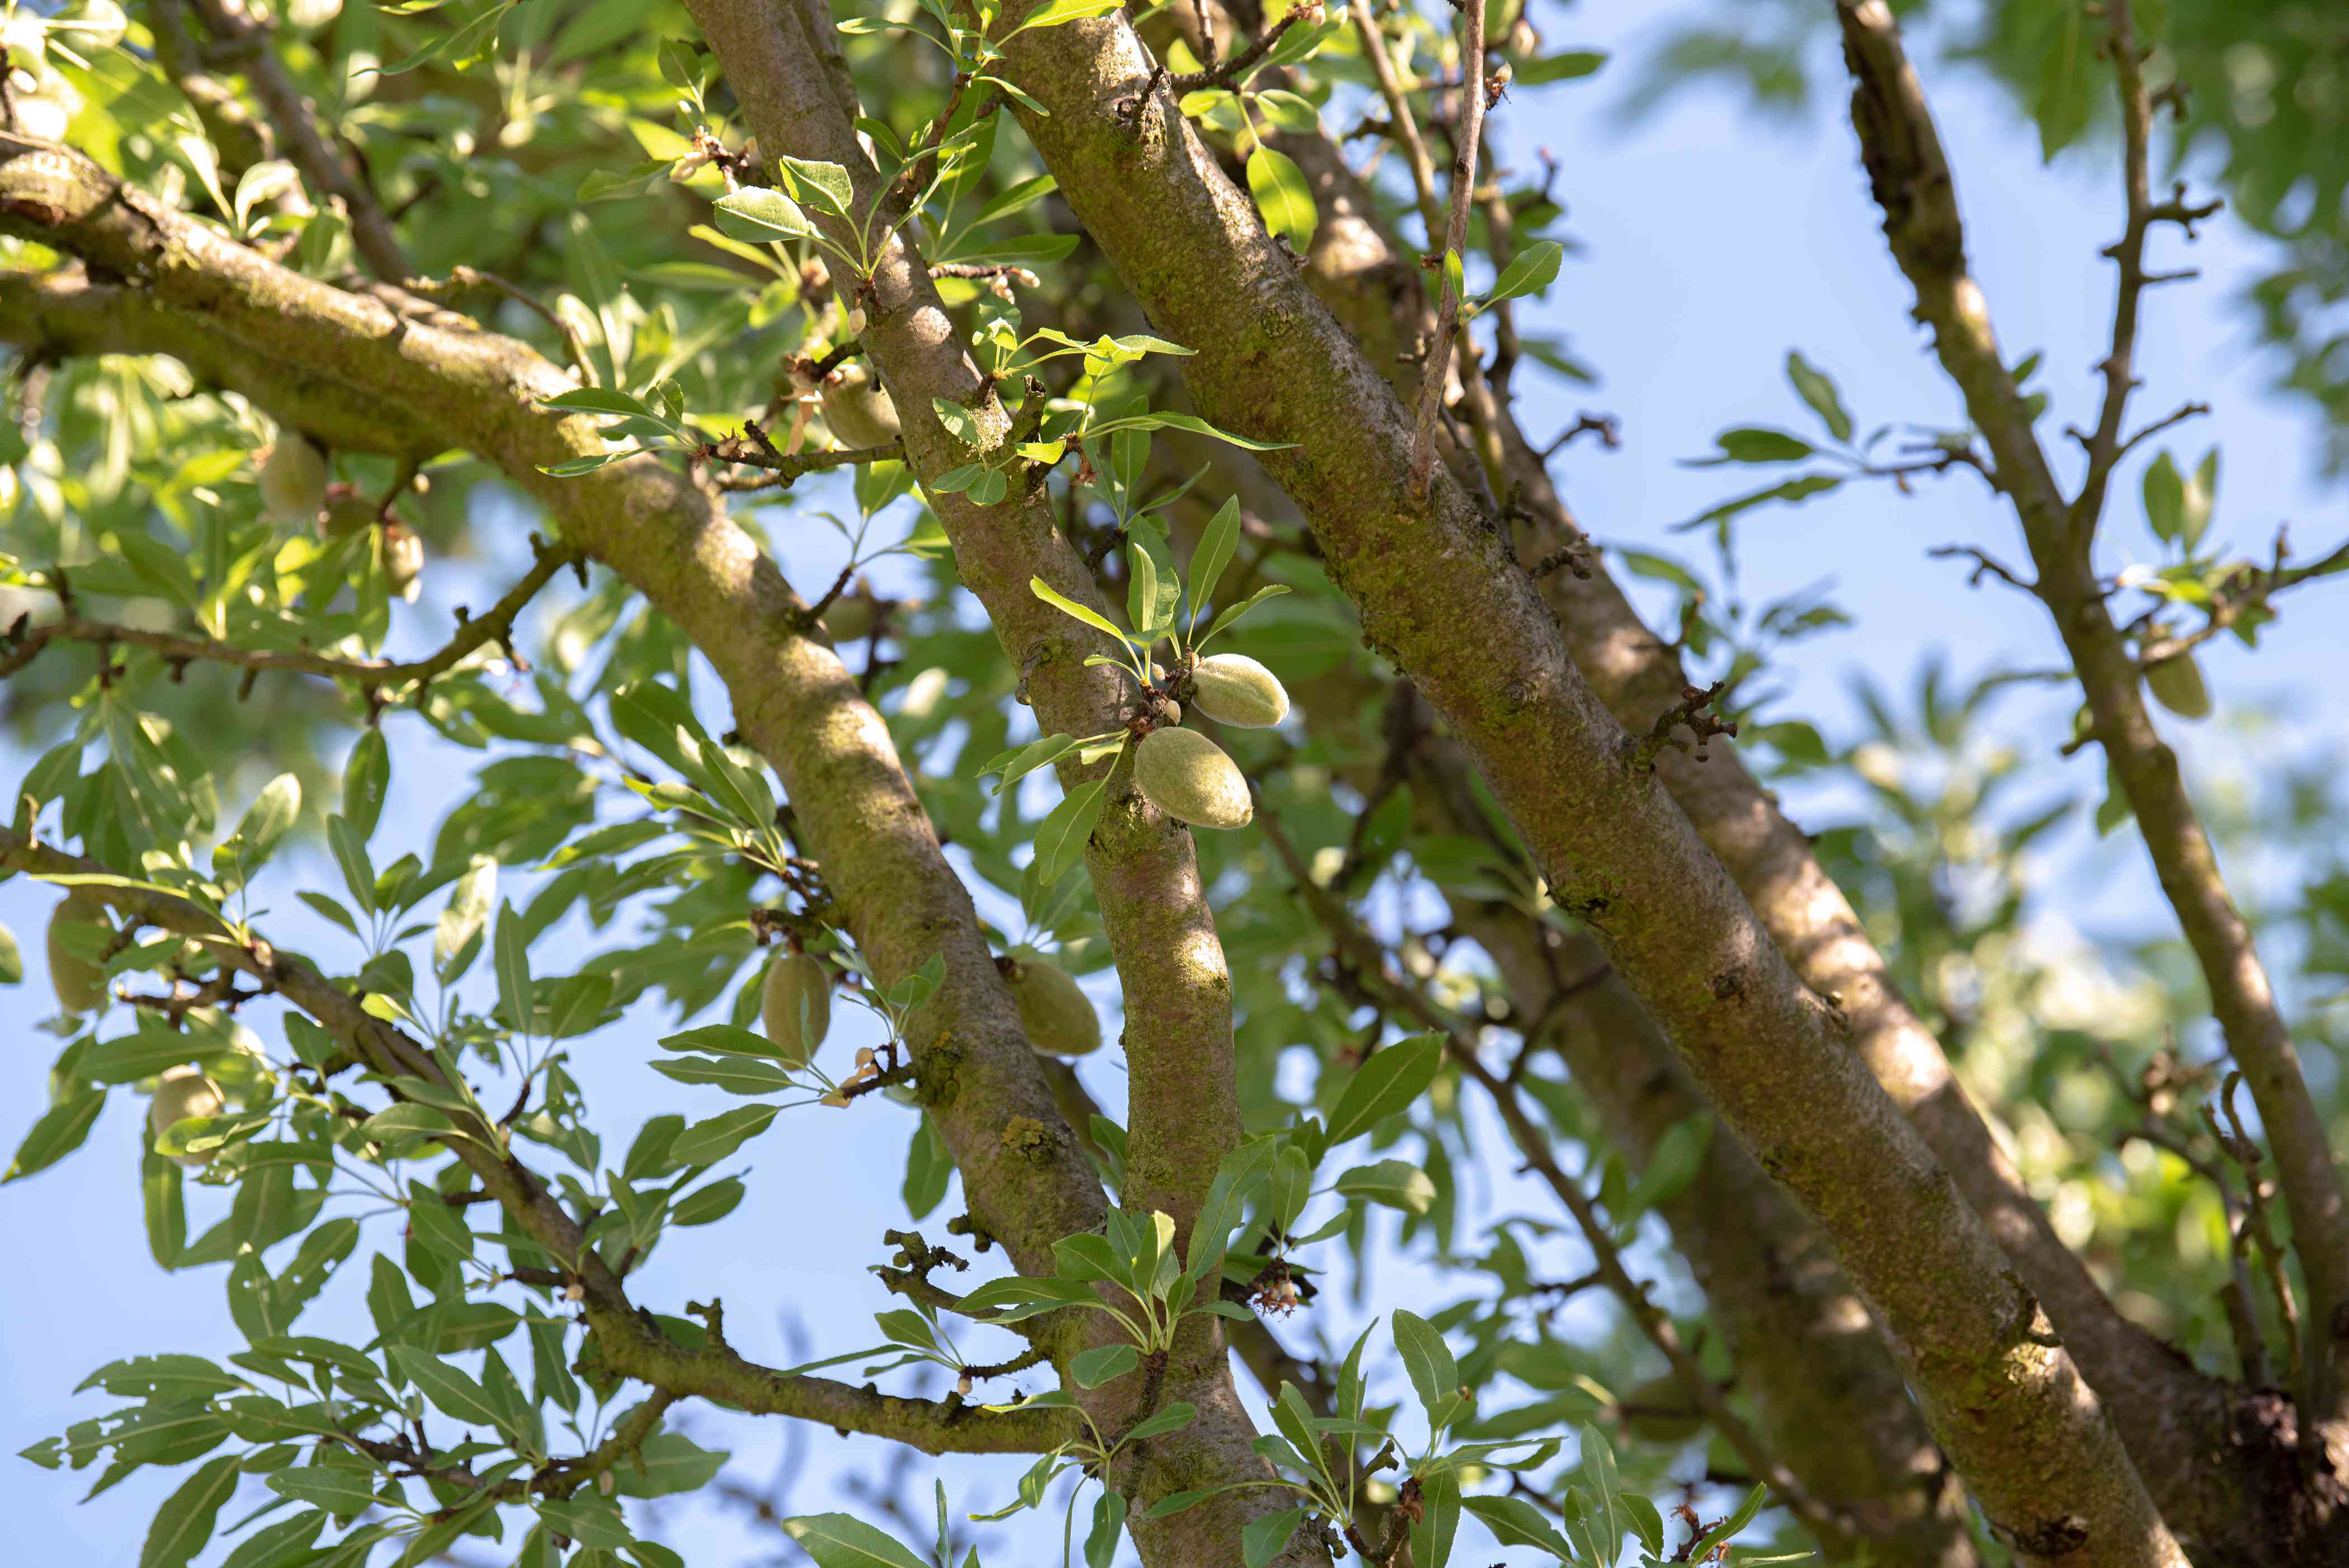 Almond tree trunks and branches with light green leaves and stone fruit hanging